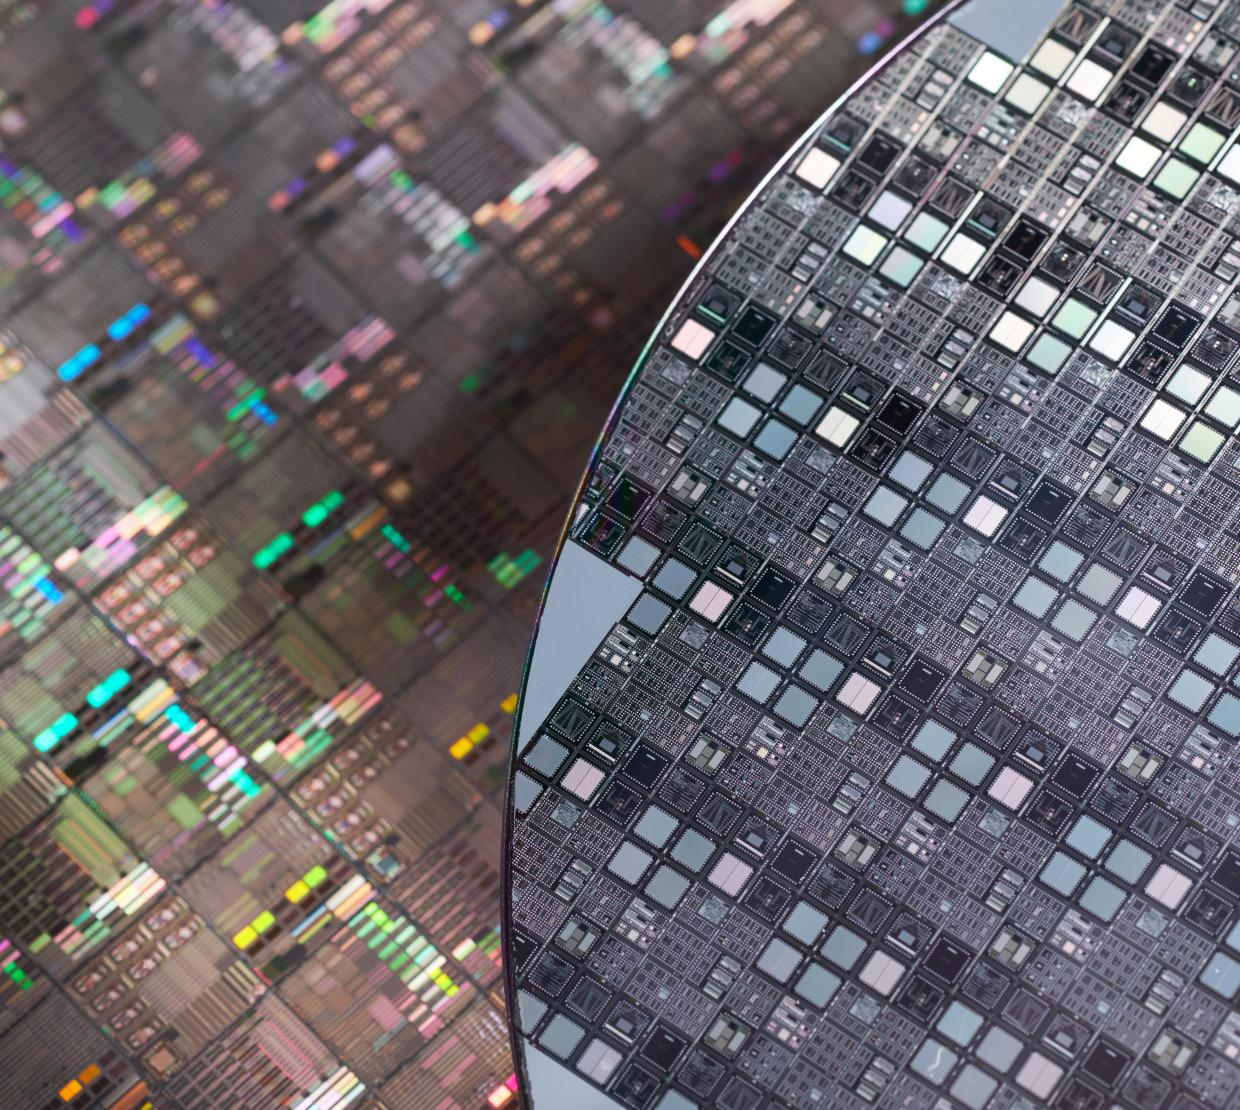 Macro image of Silicon wafers